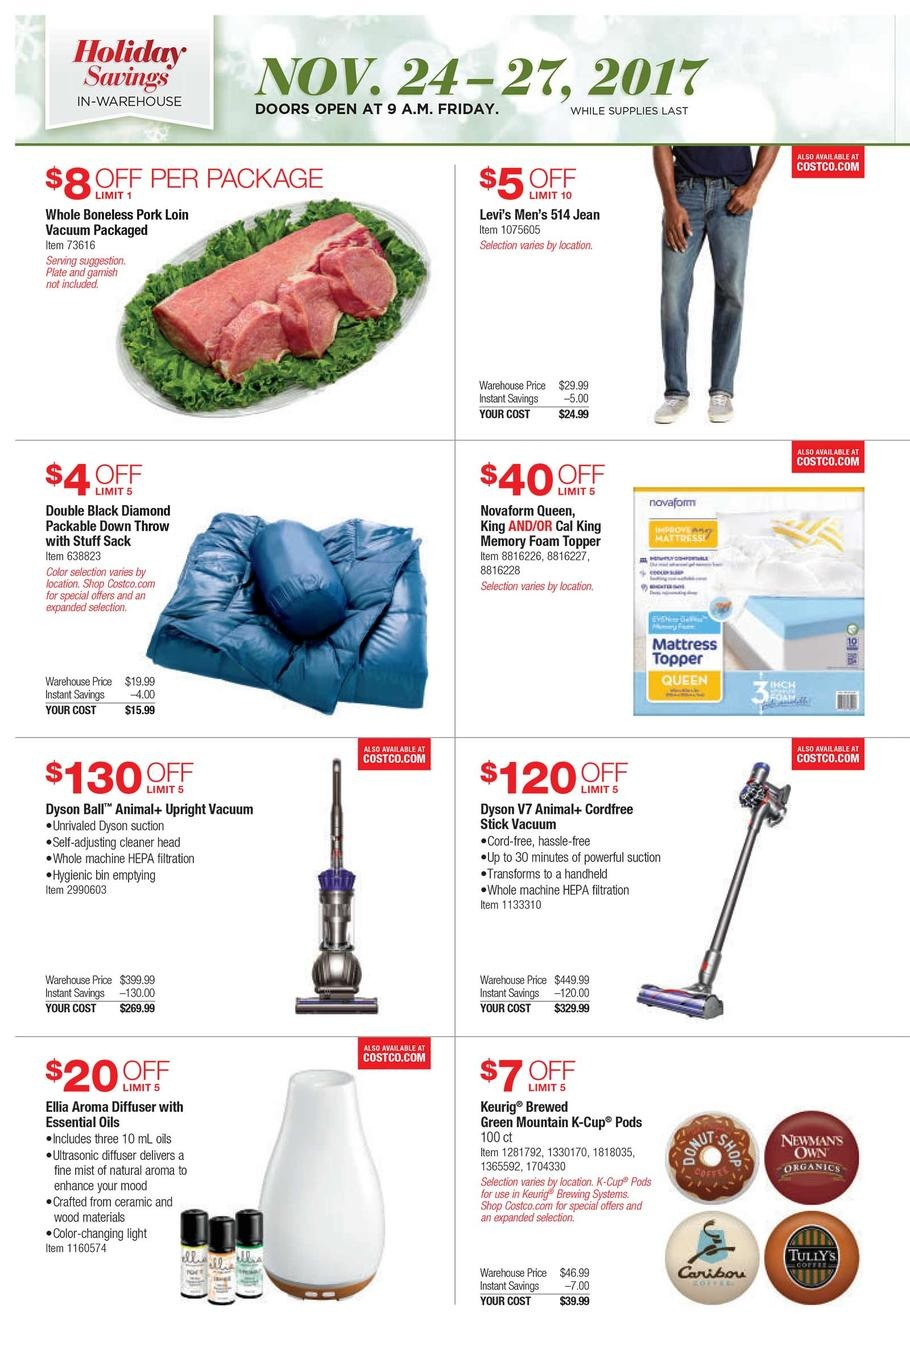 Costco Black Friday Ads, Sales, Doorbusters, and Deals ...